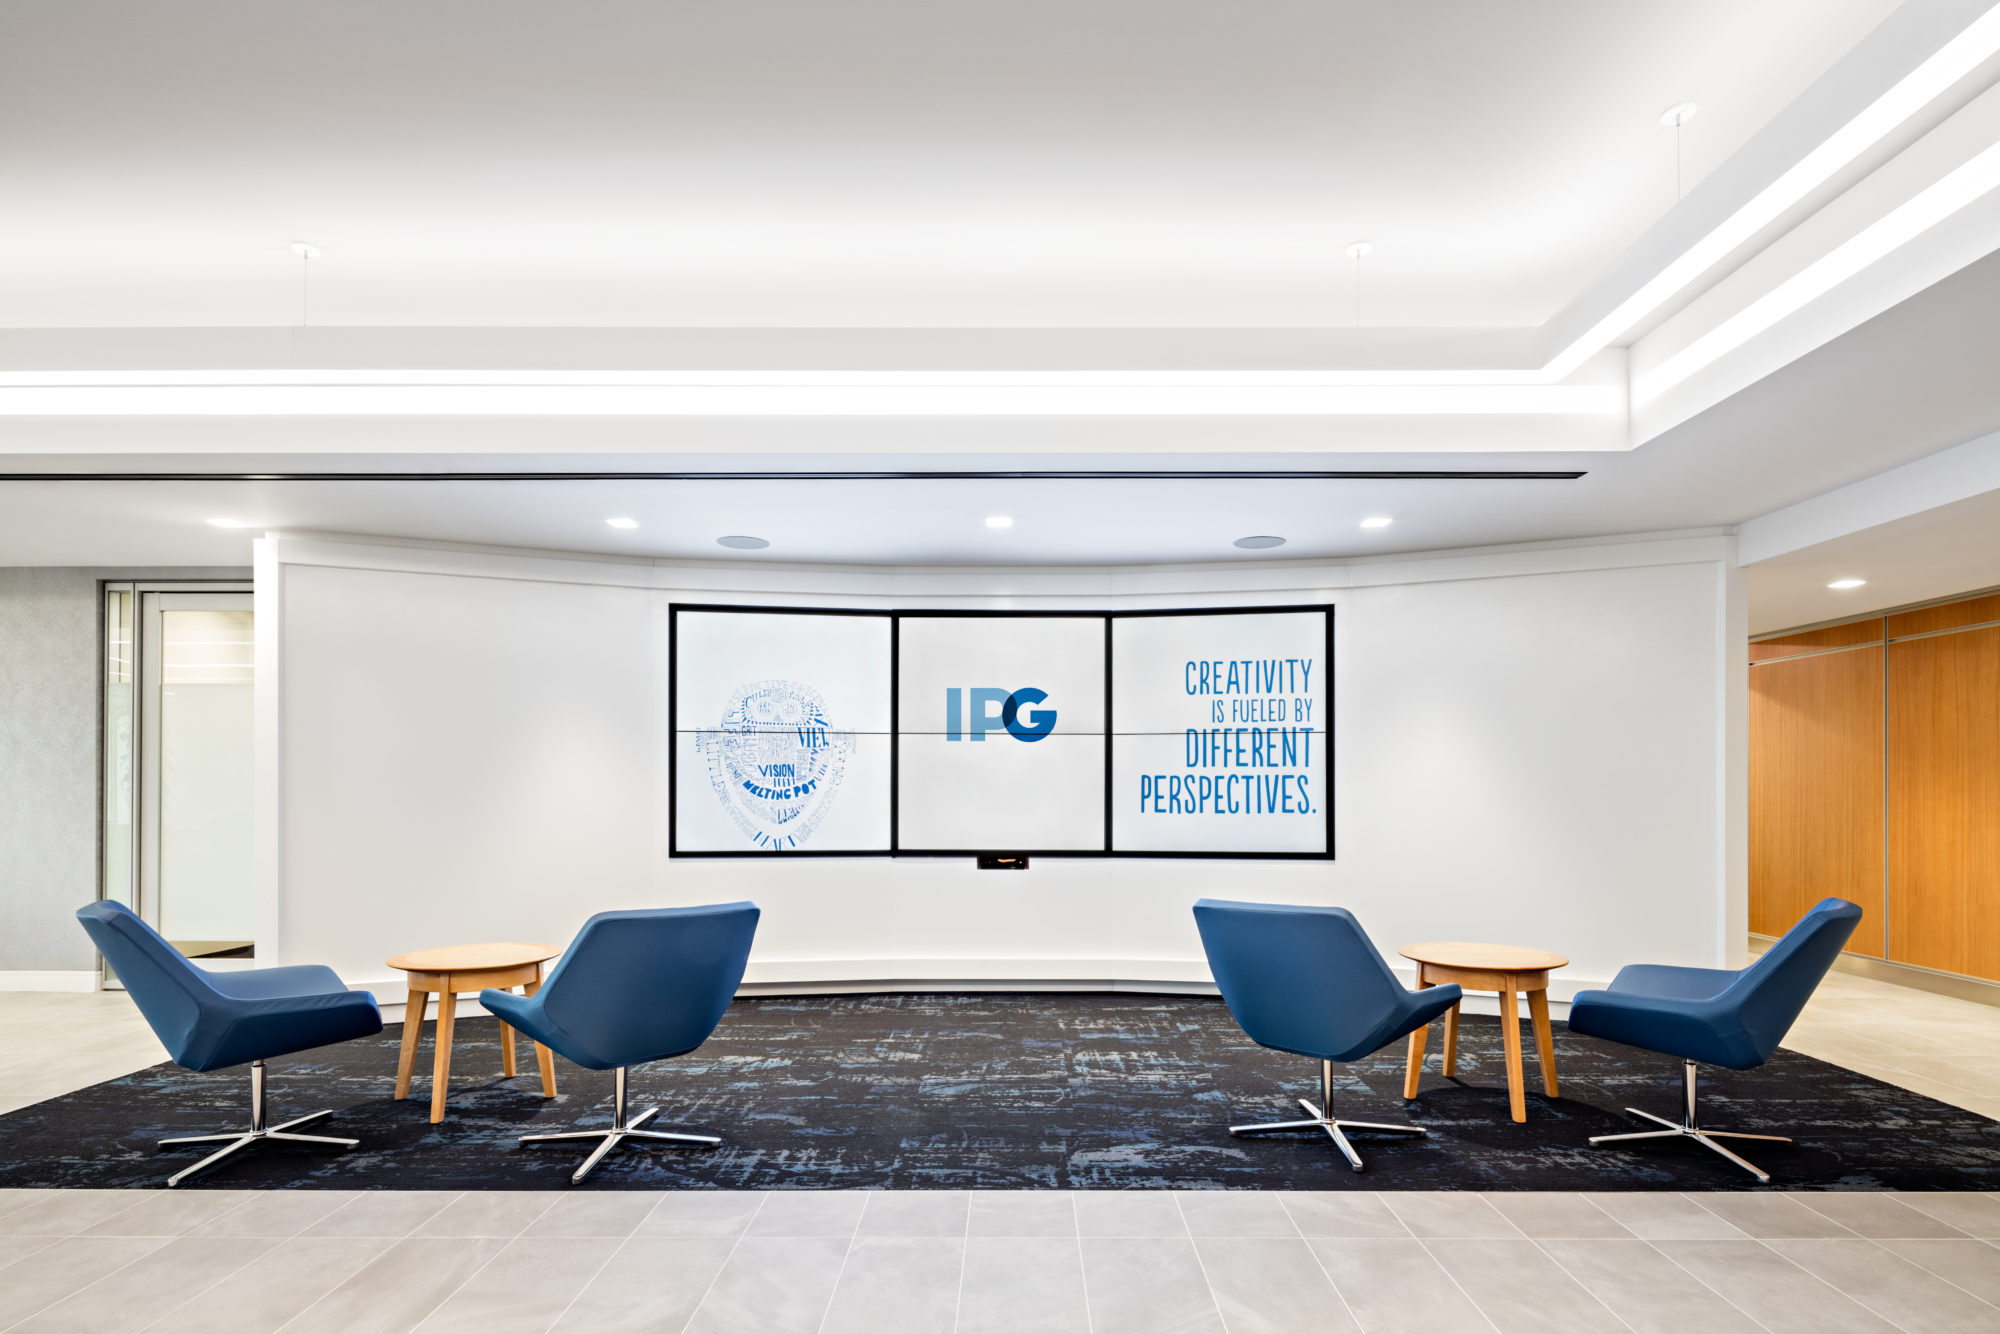 IPG – Interpublic Group